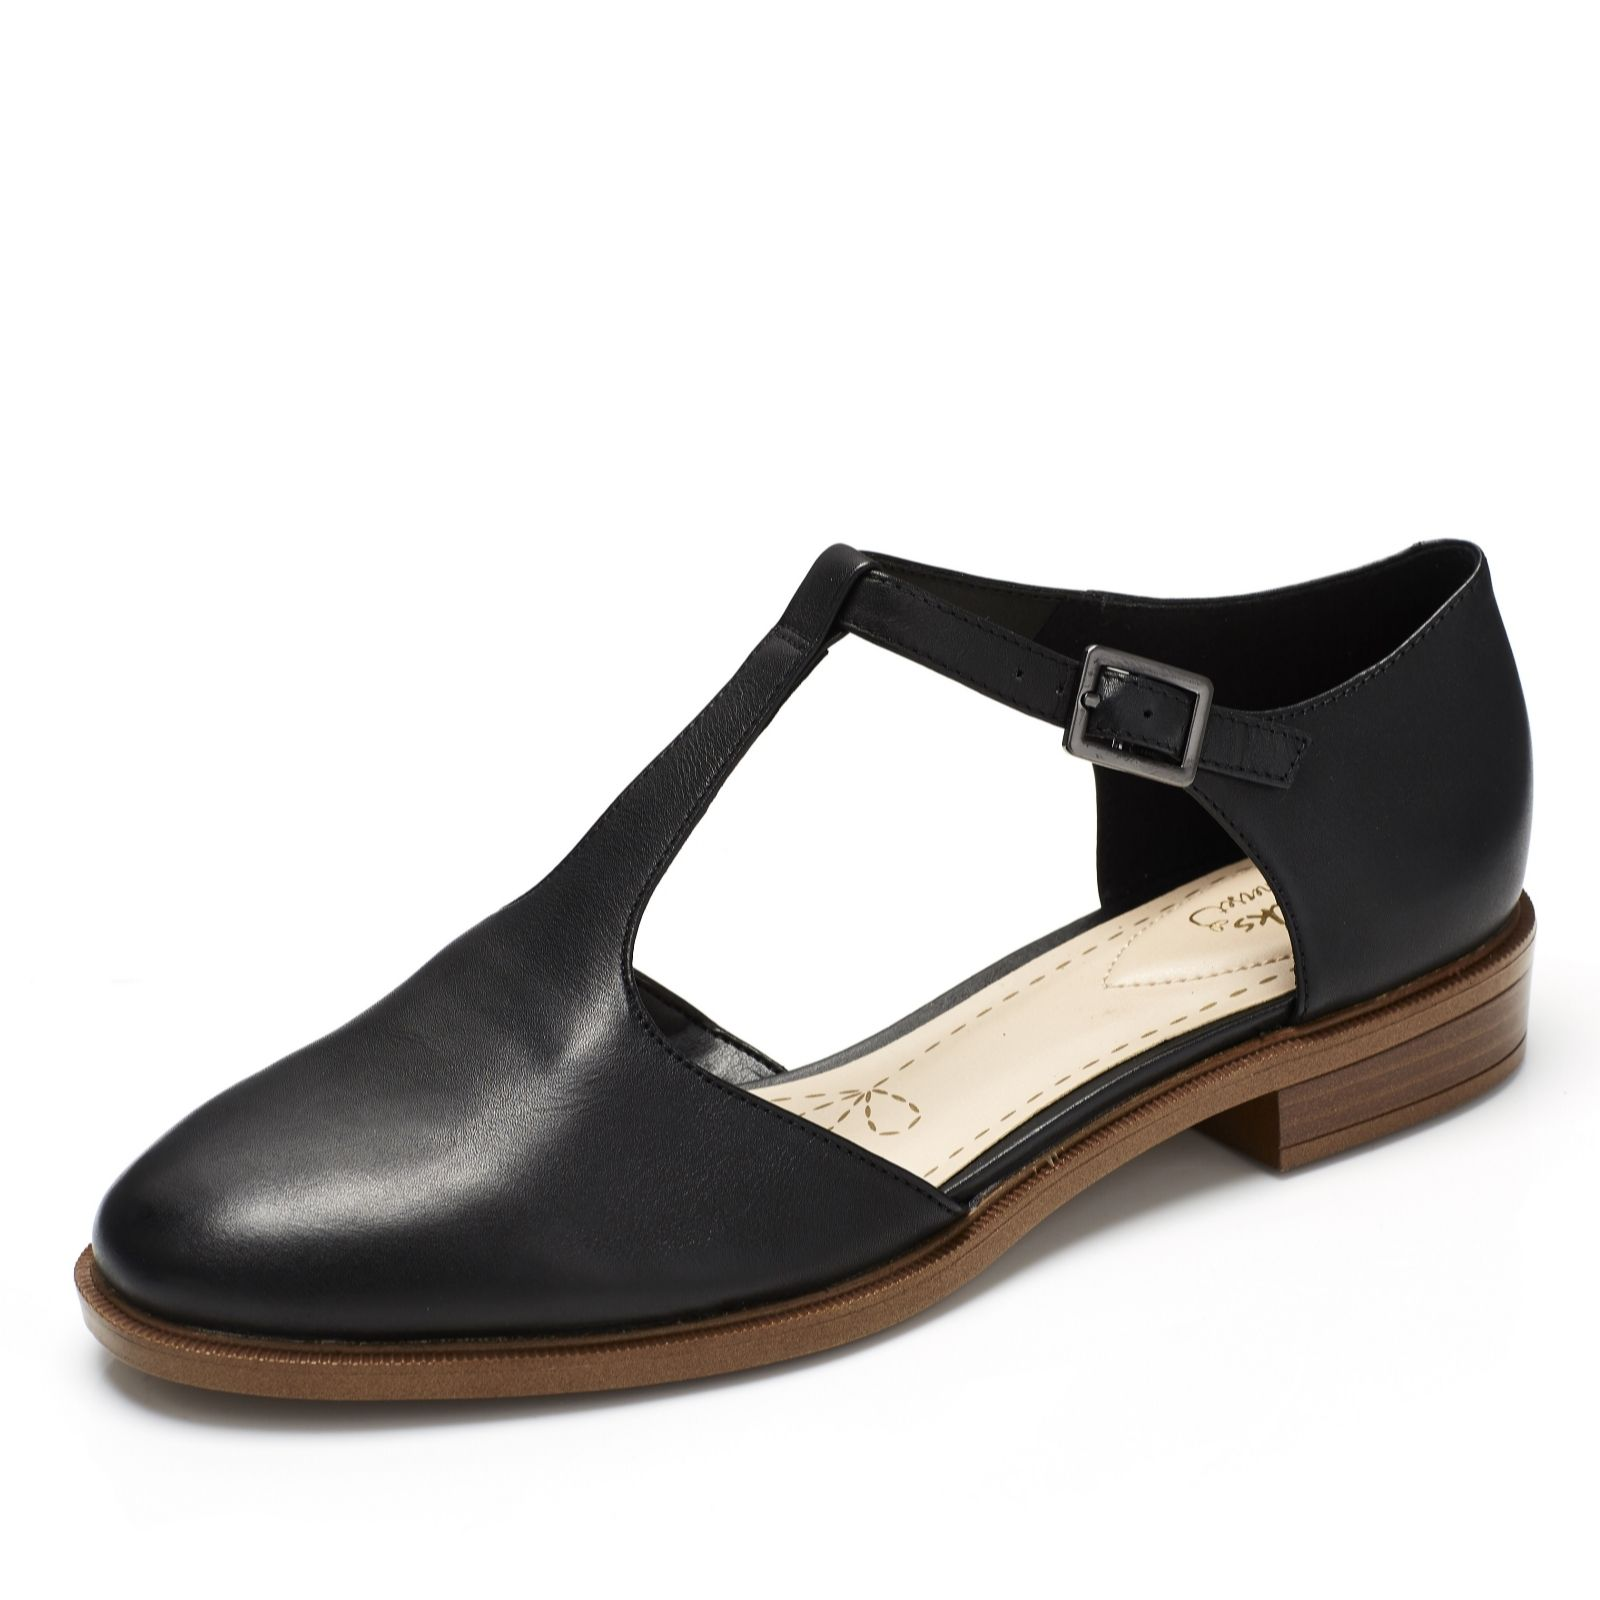 clarks flat shoes and sandals innovaide